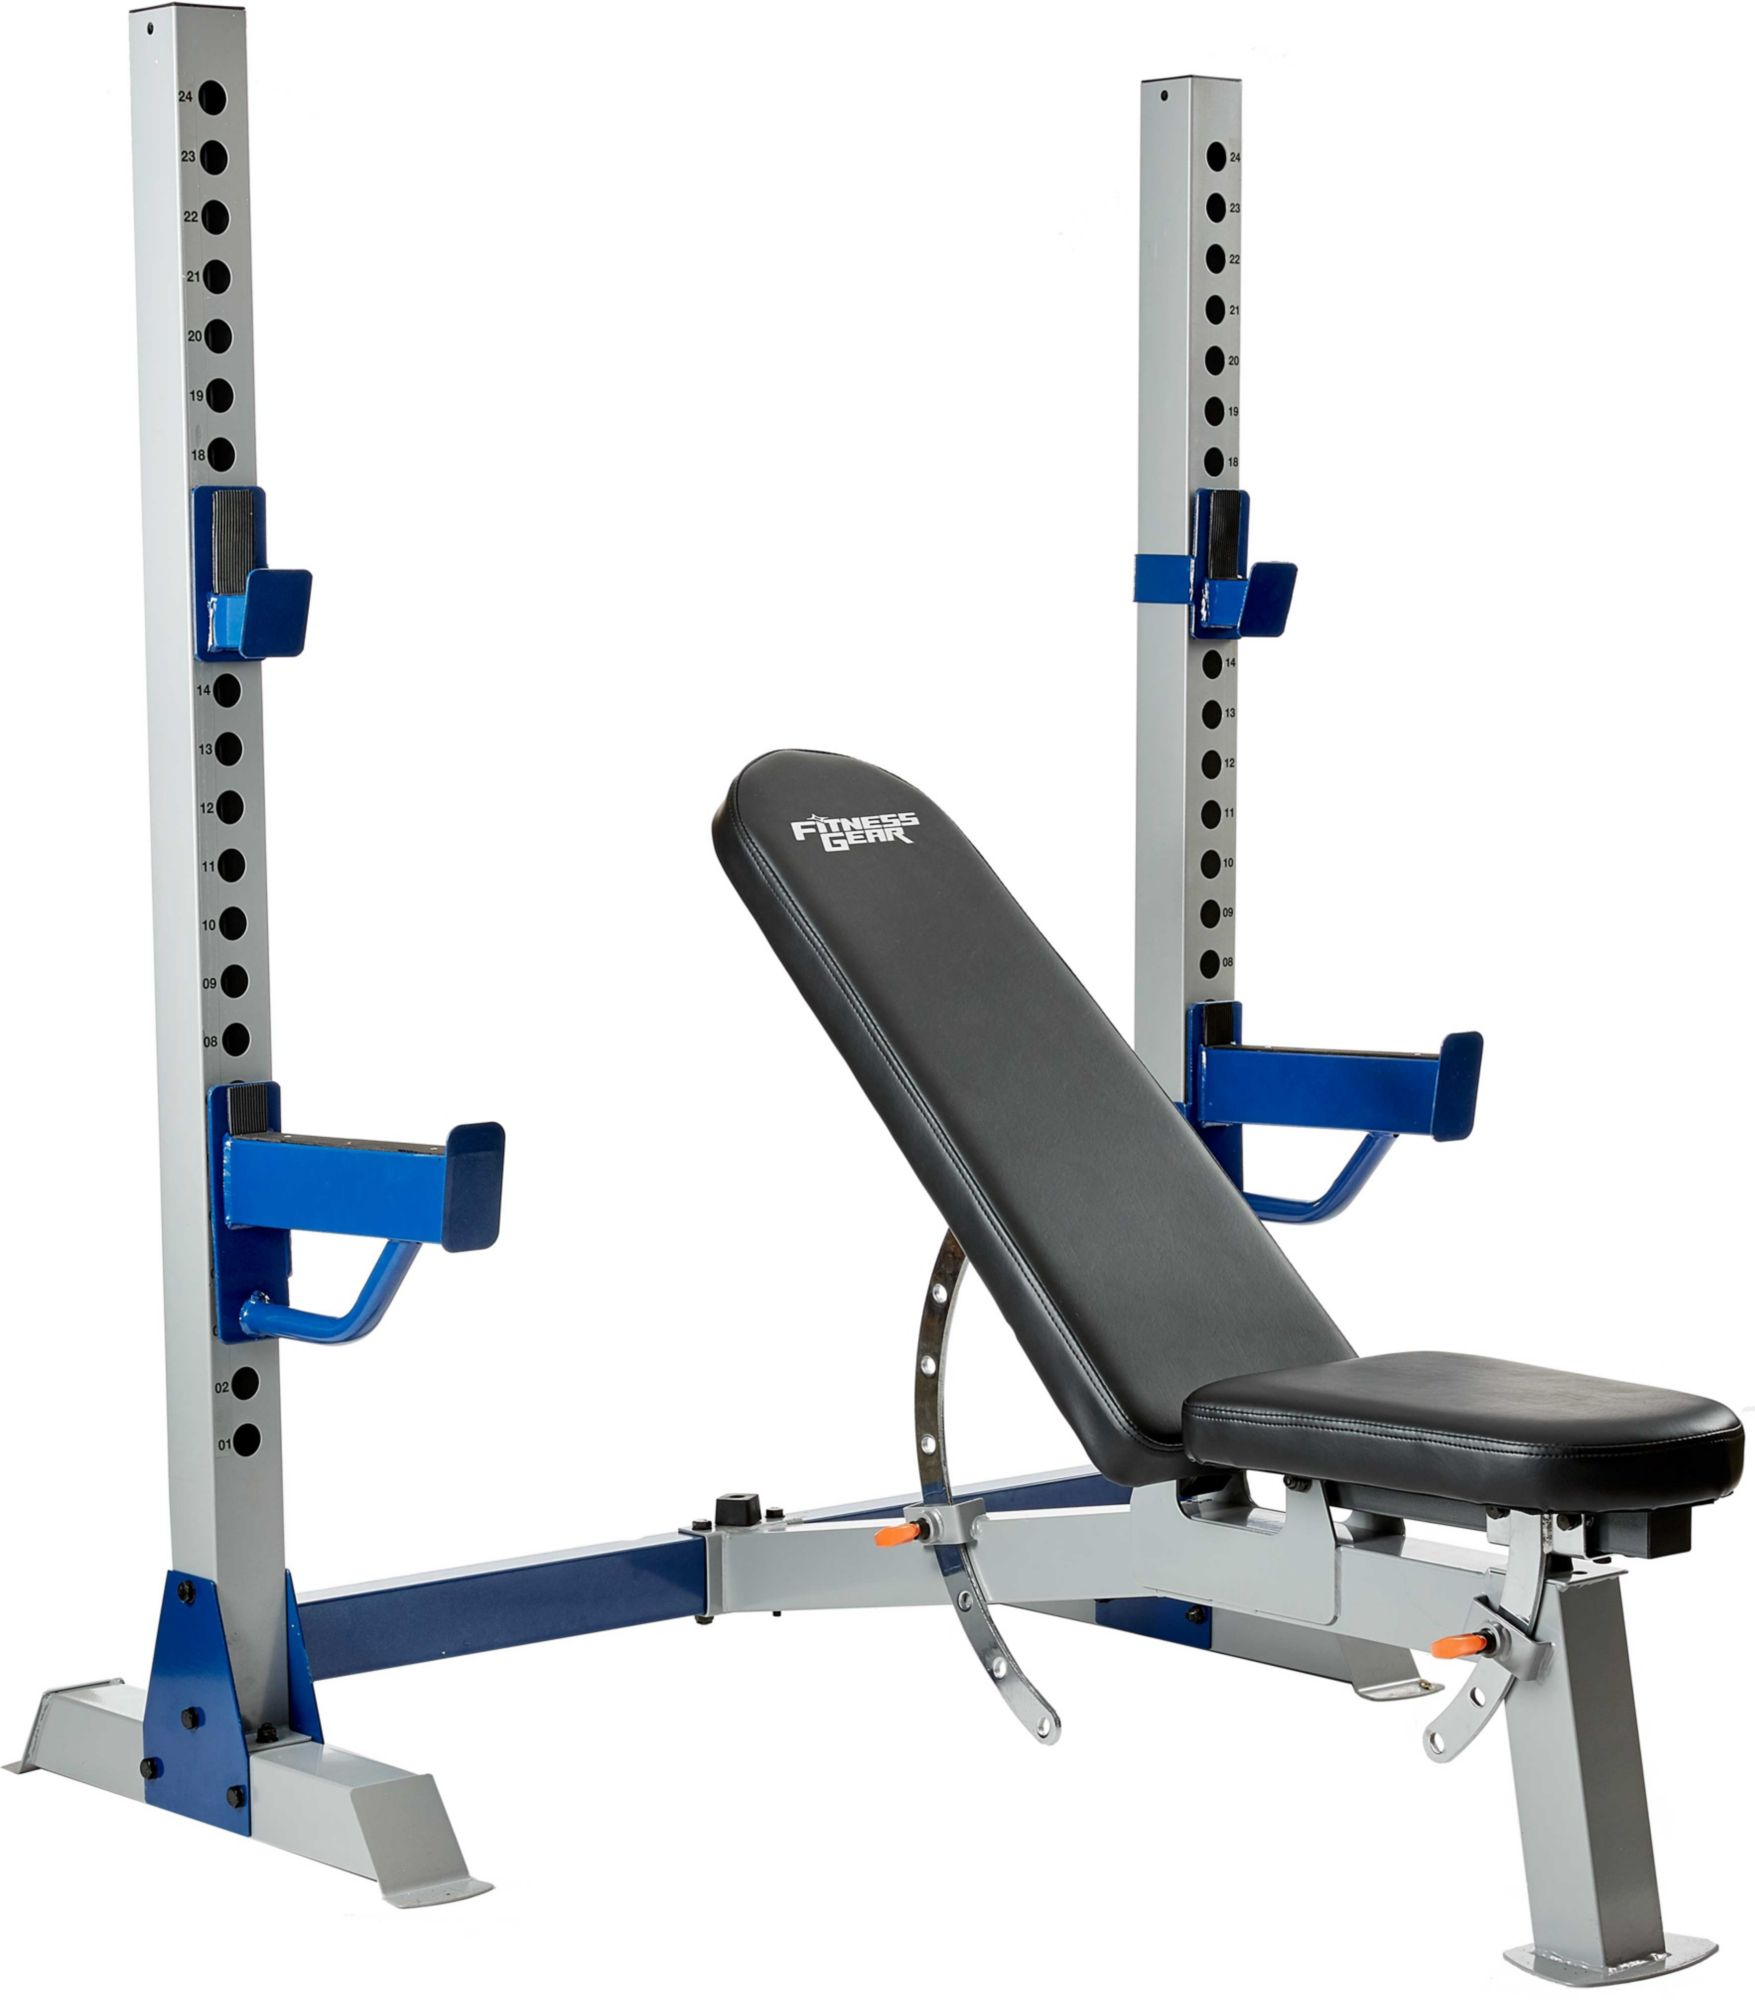 Free Weights On Bench: Fitness Gear Pro Olympic Weight Bench